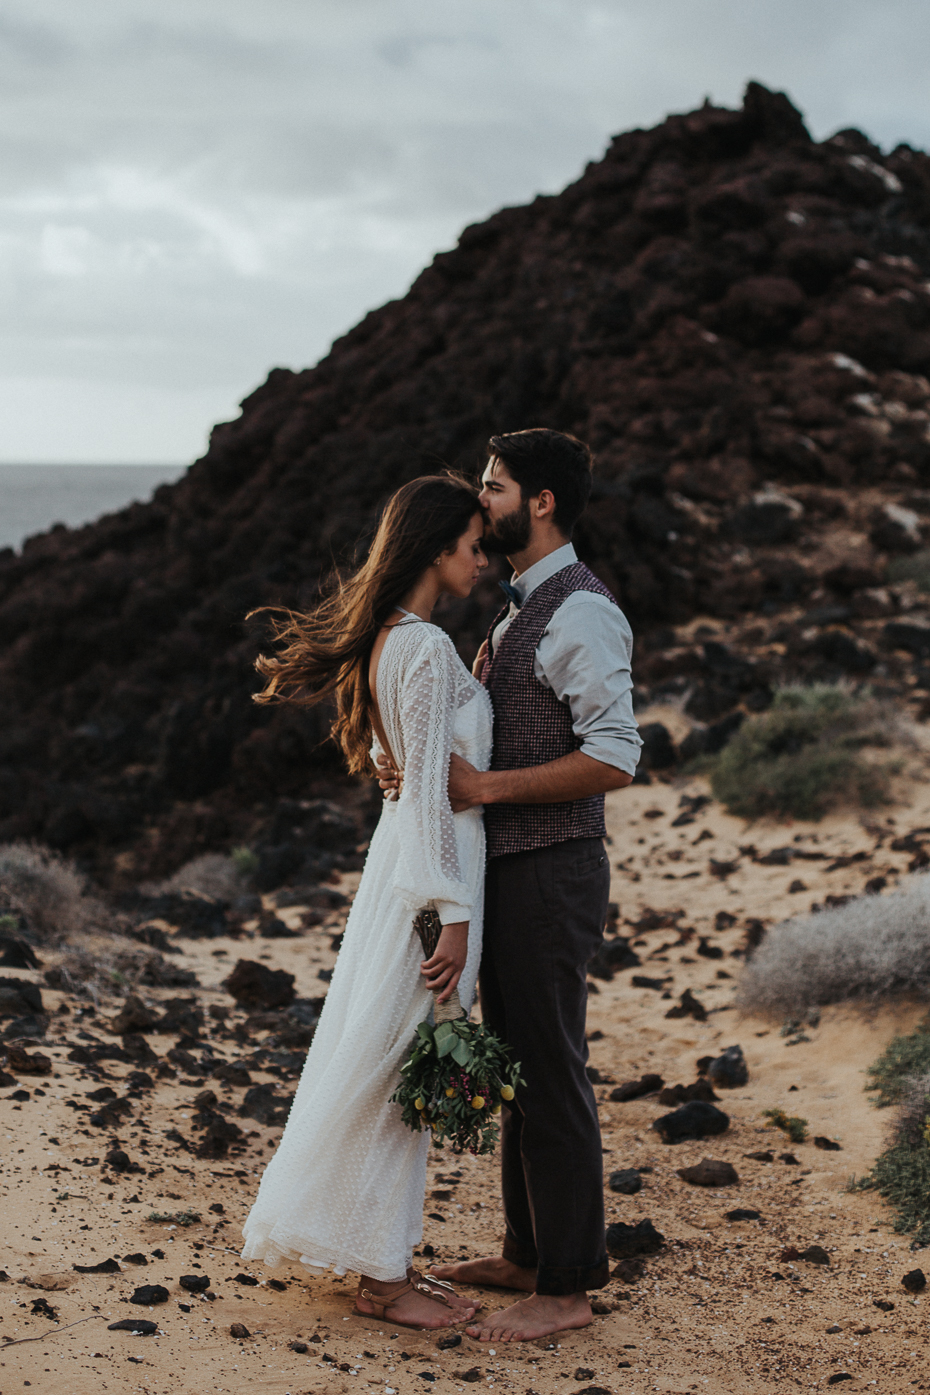 hochzeitsfotograf-wedding-workshop-lagraciosa-94